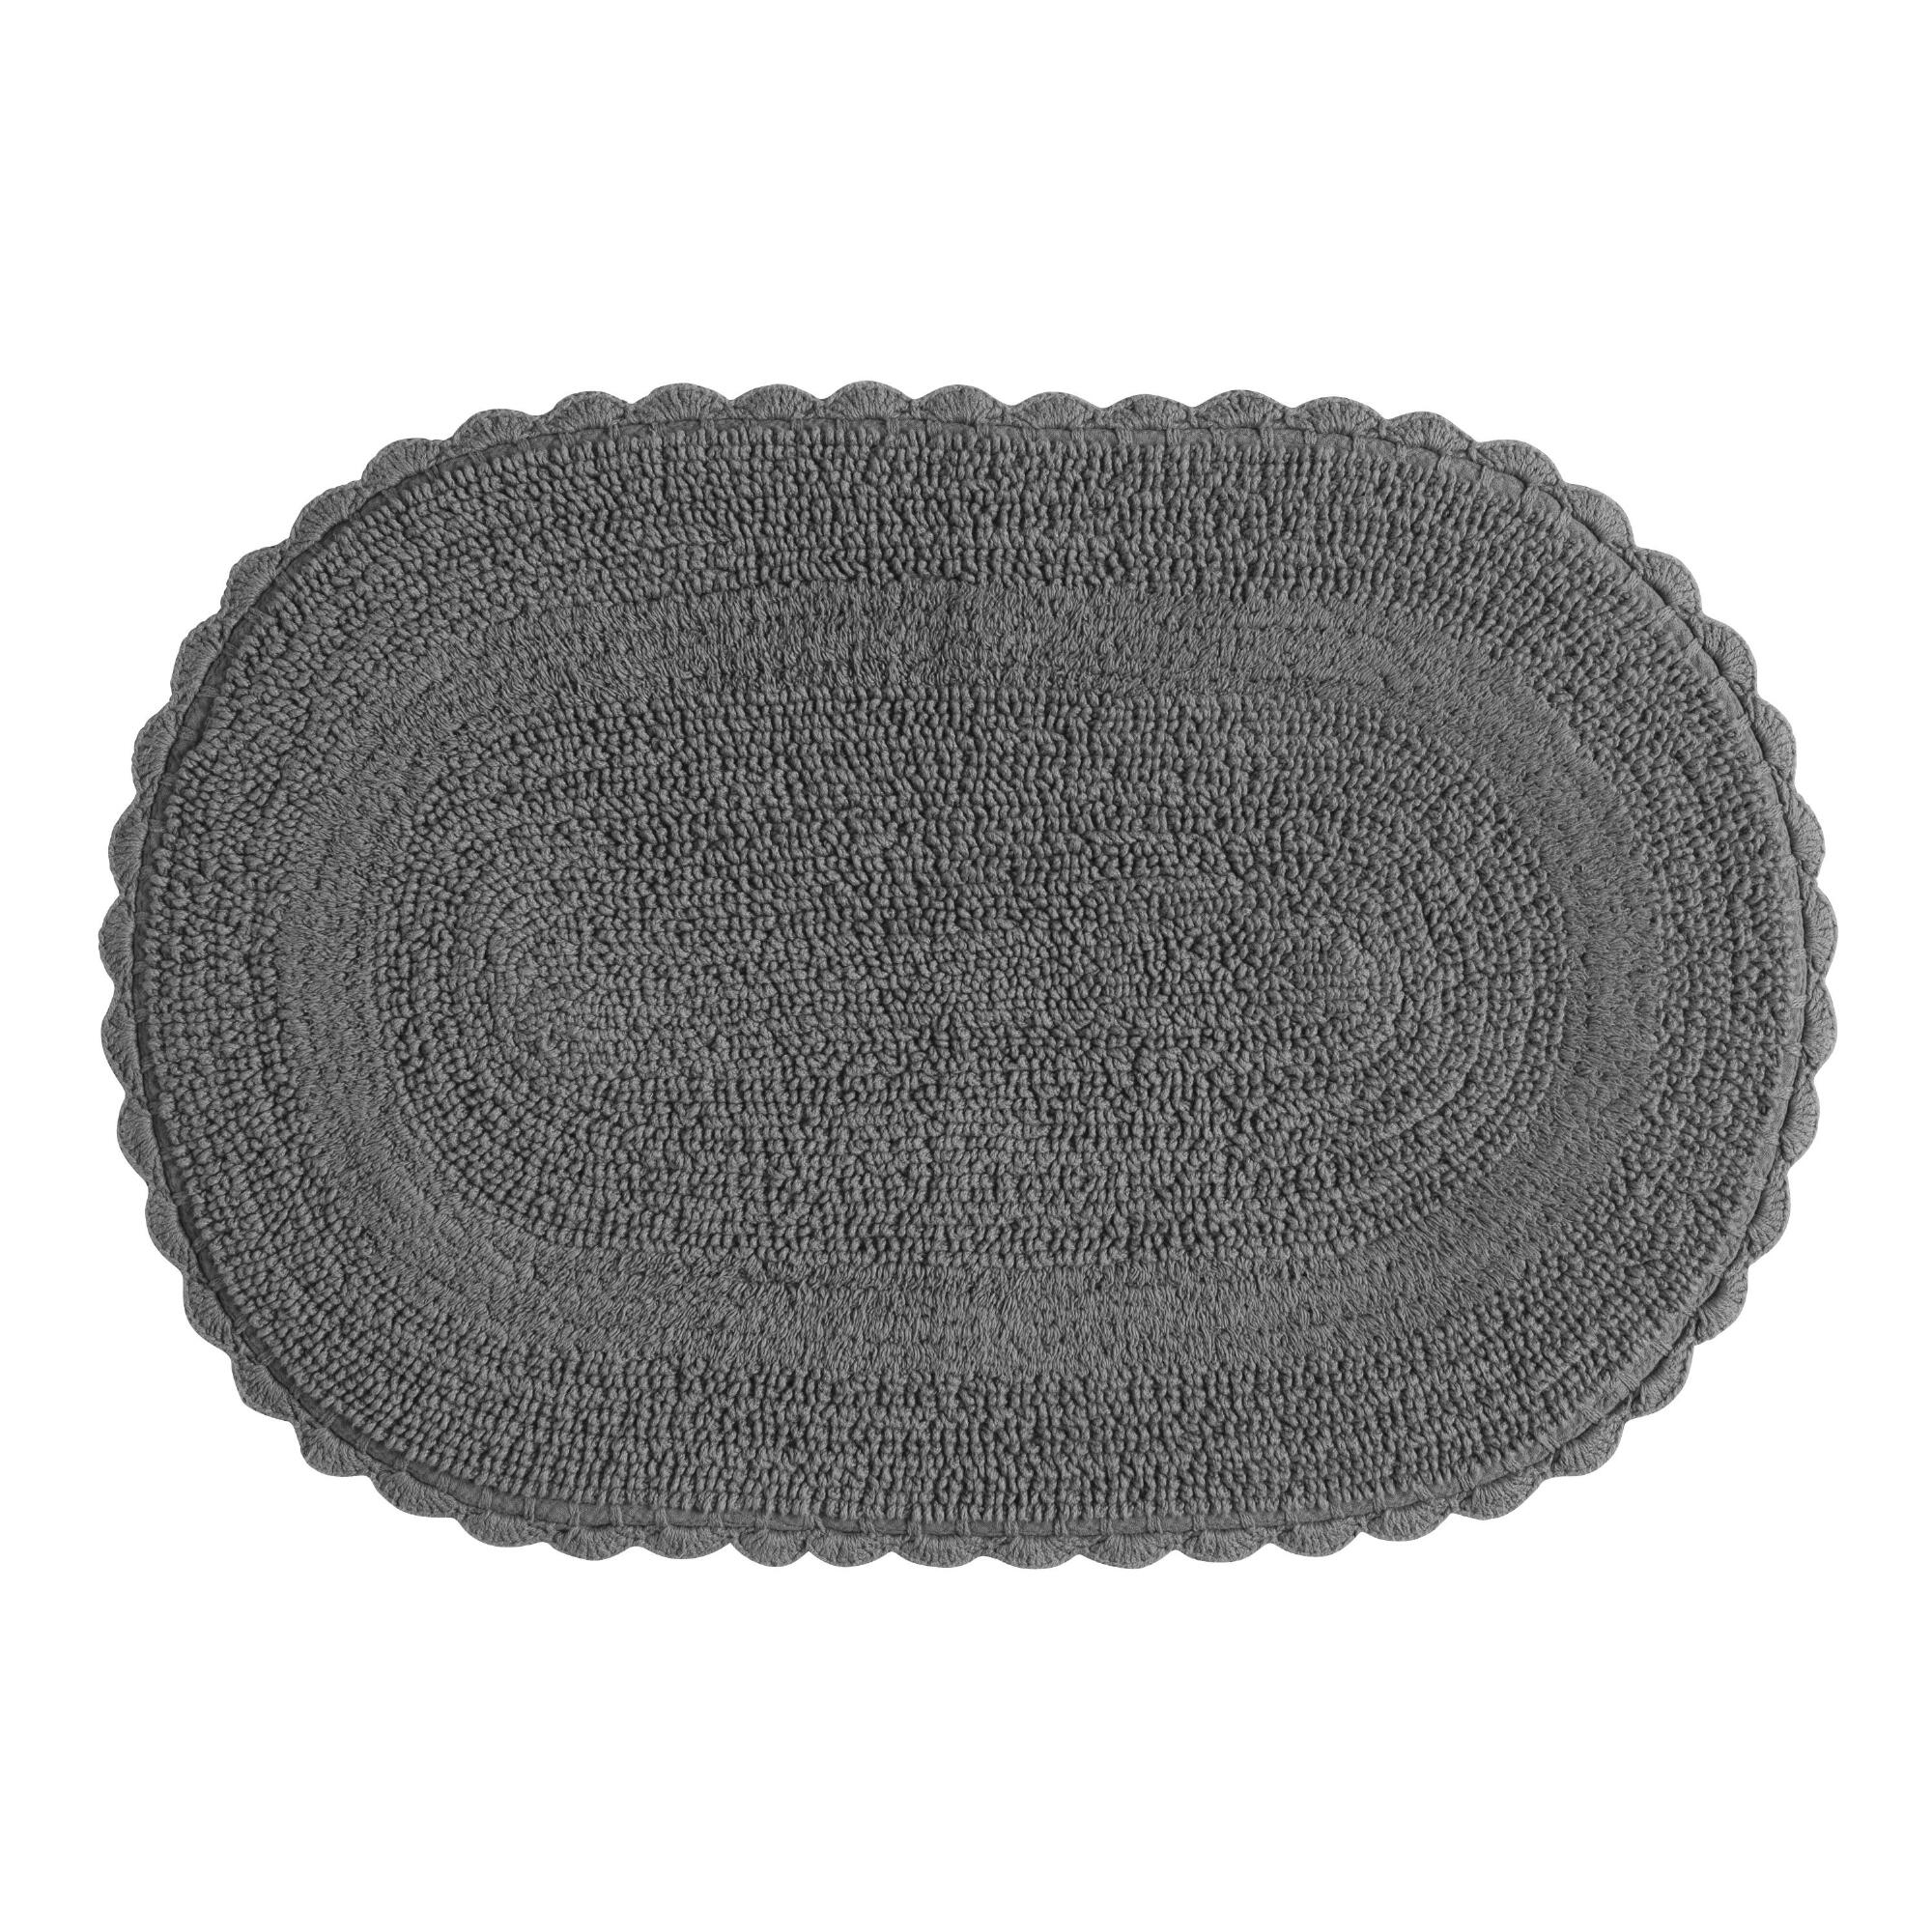 Gray Oval Crochet Bath Mat